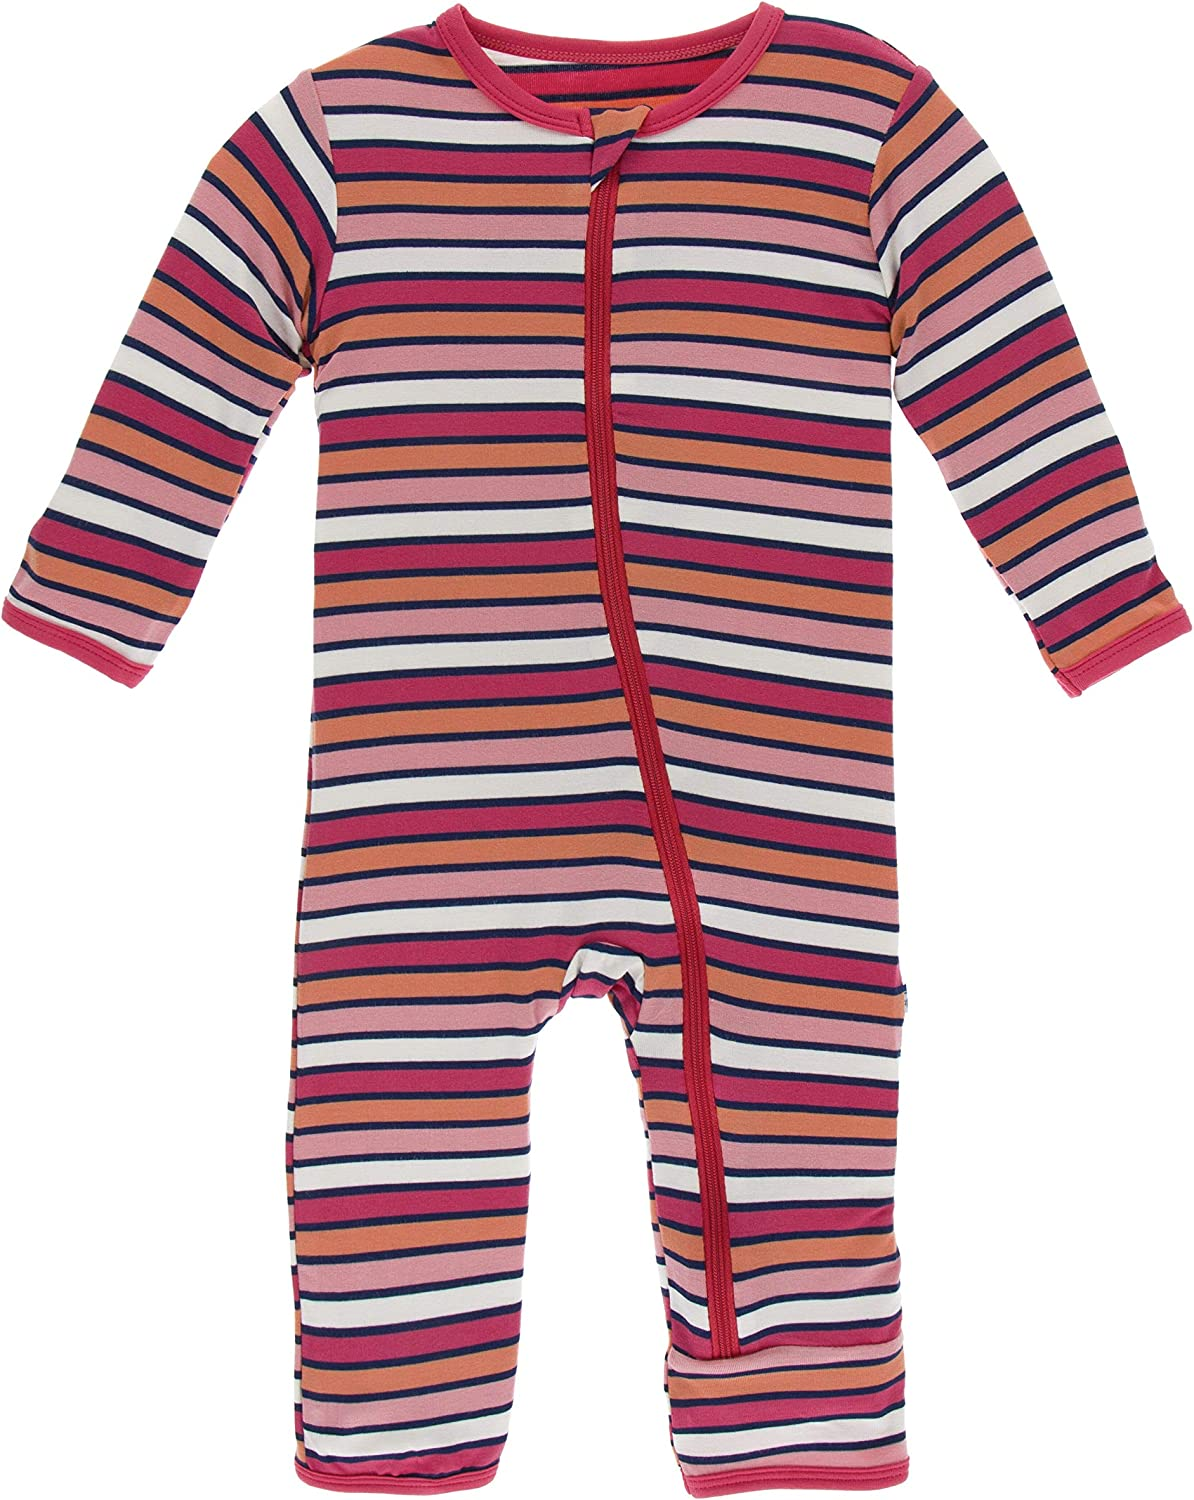 KicKee Pants Little Boys and Girls Essentials Print Coverall with Zipper